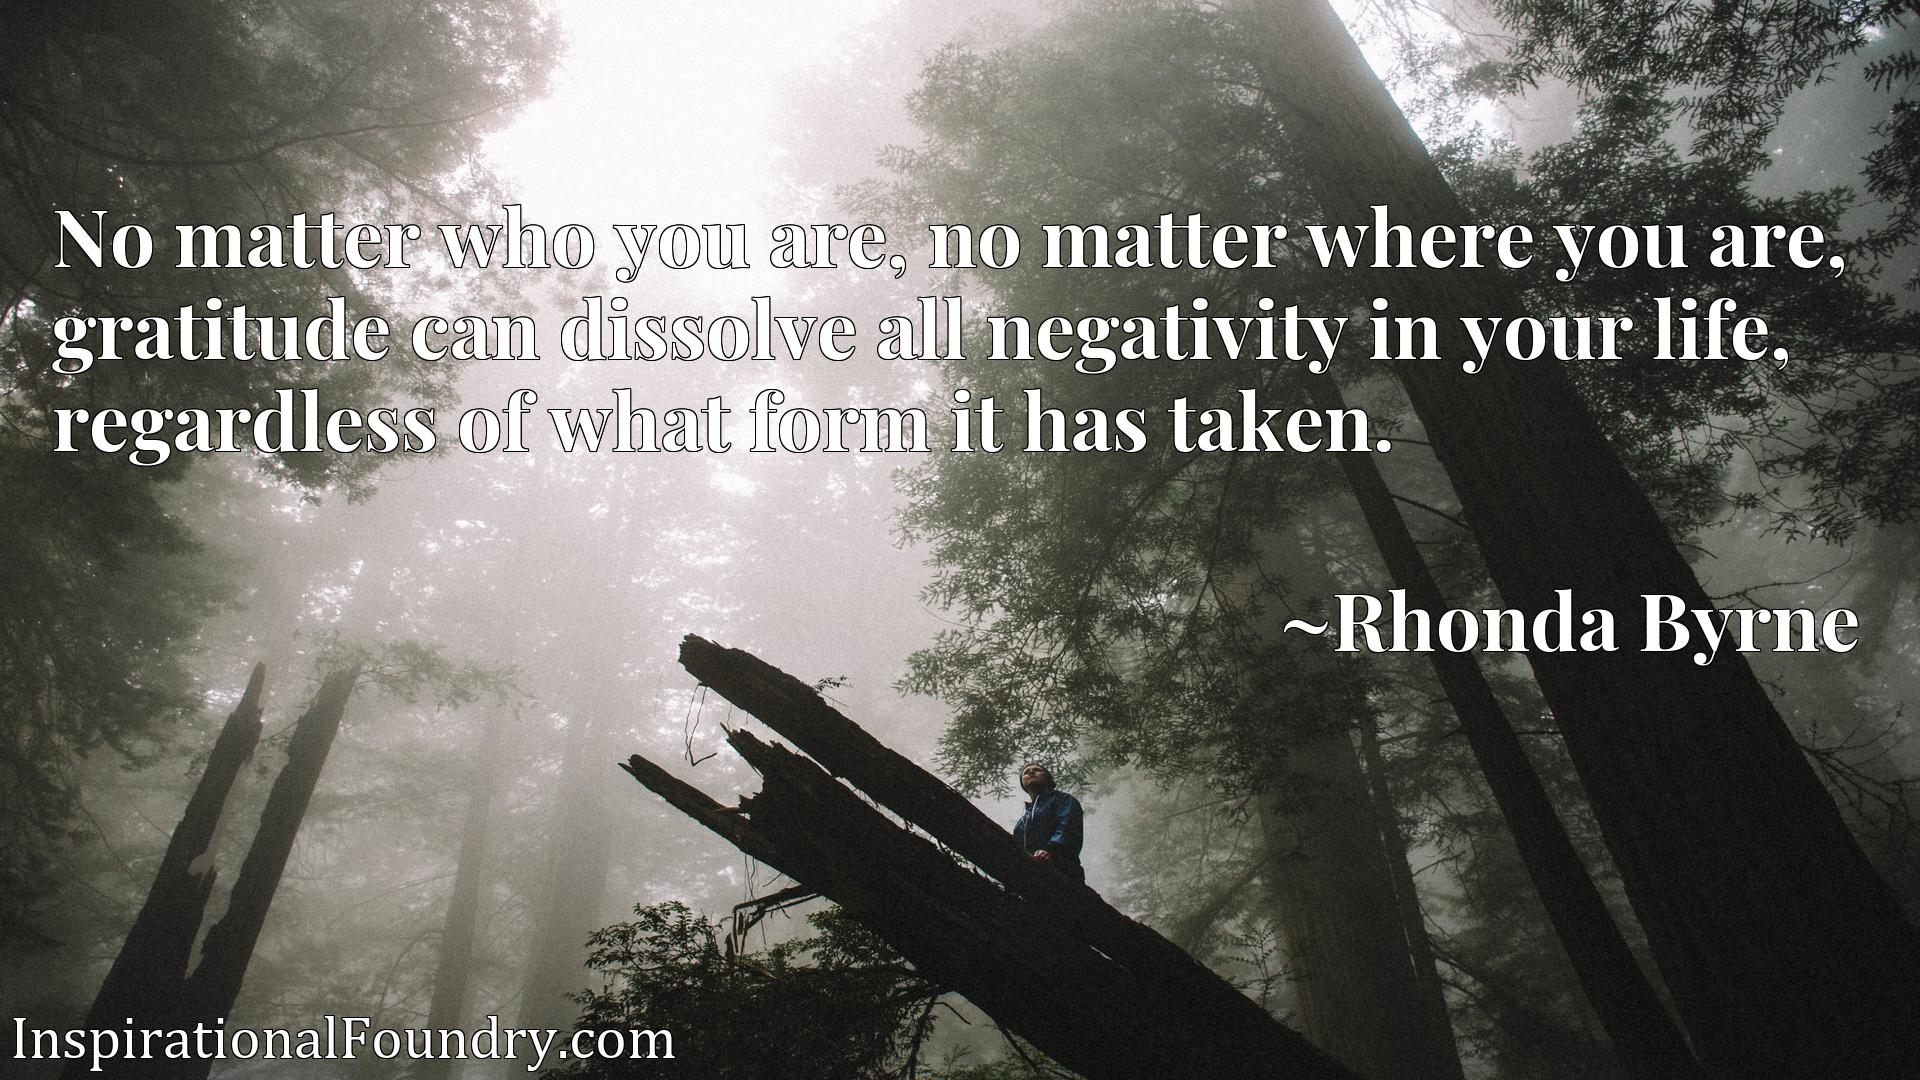 No matter who you are, no matter where you are, gratitude can dissolve all negativity in your life, regardless of what form it has taken.